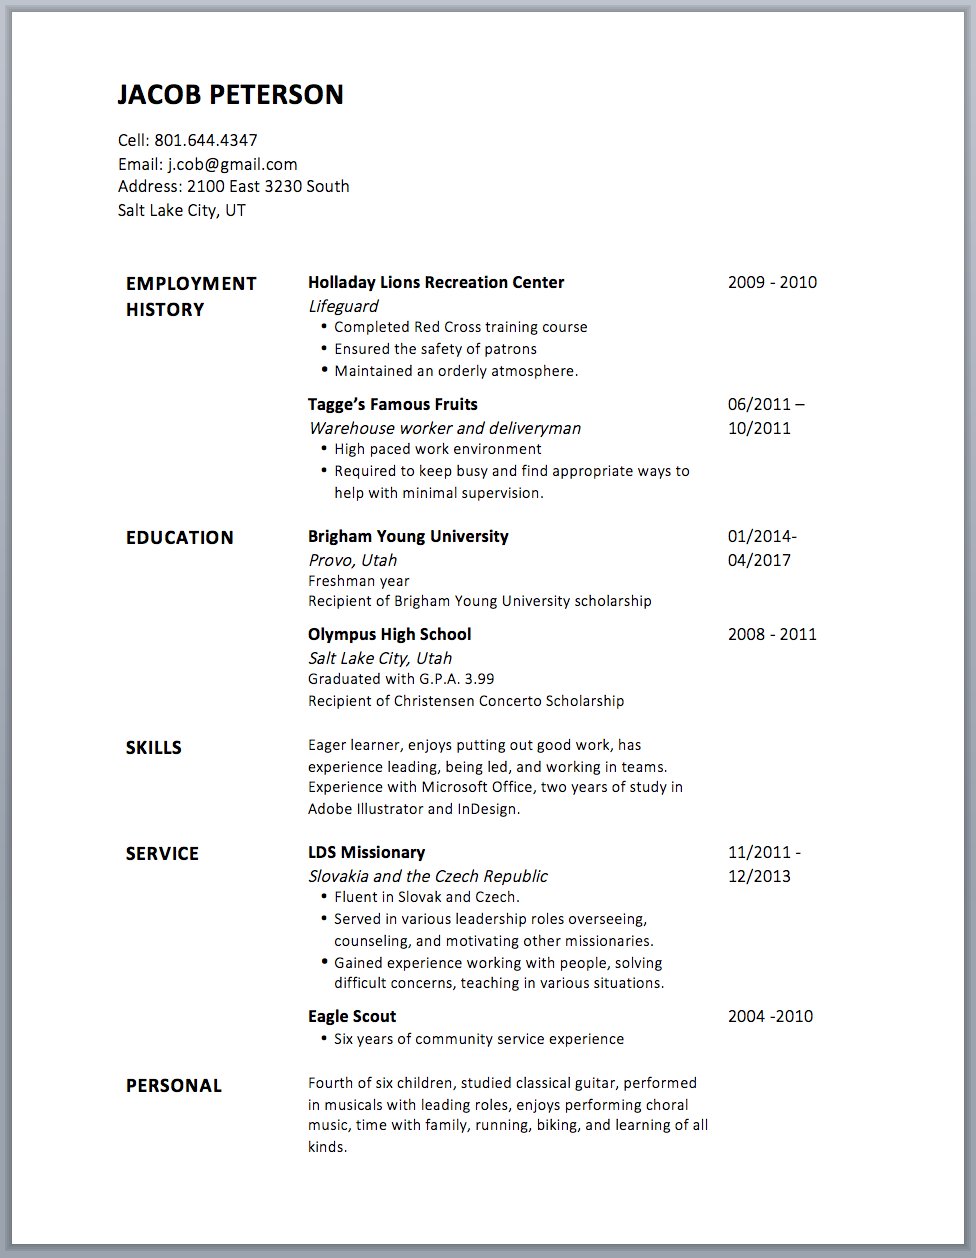 bullet points in resume